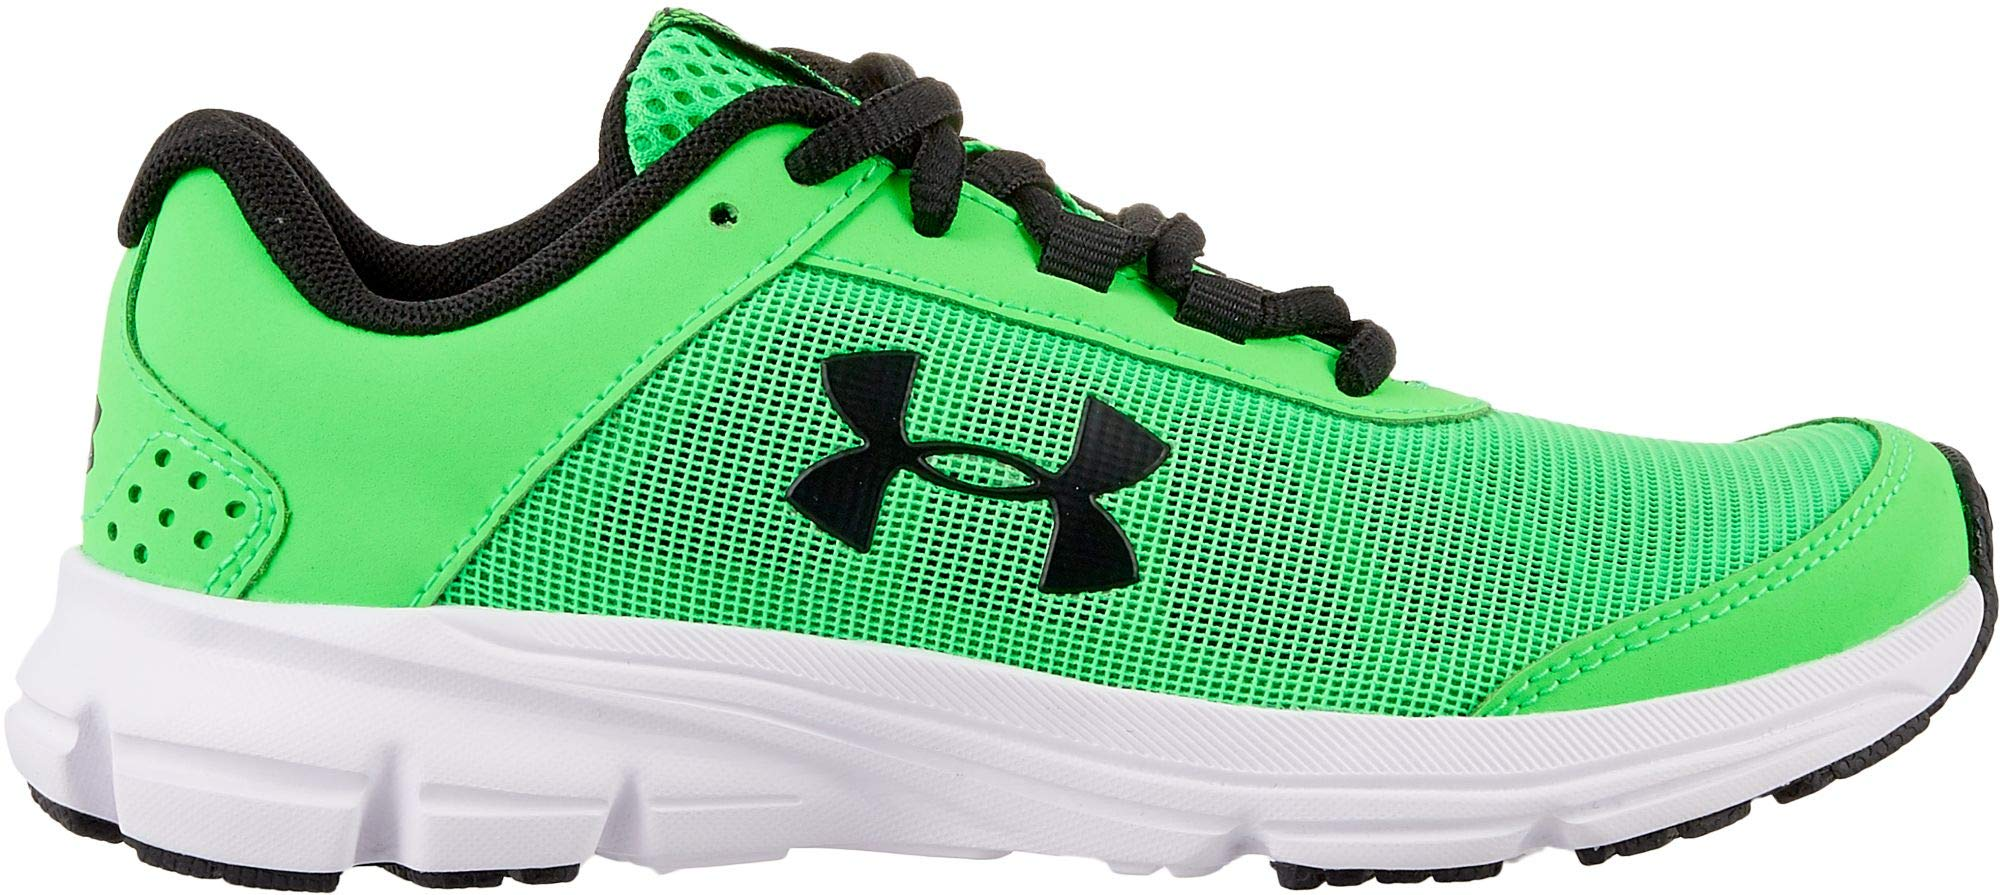 Under Armour Kids Rave 2, Green/White/Black, 6Y